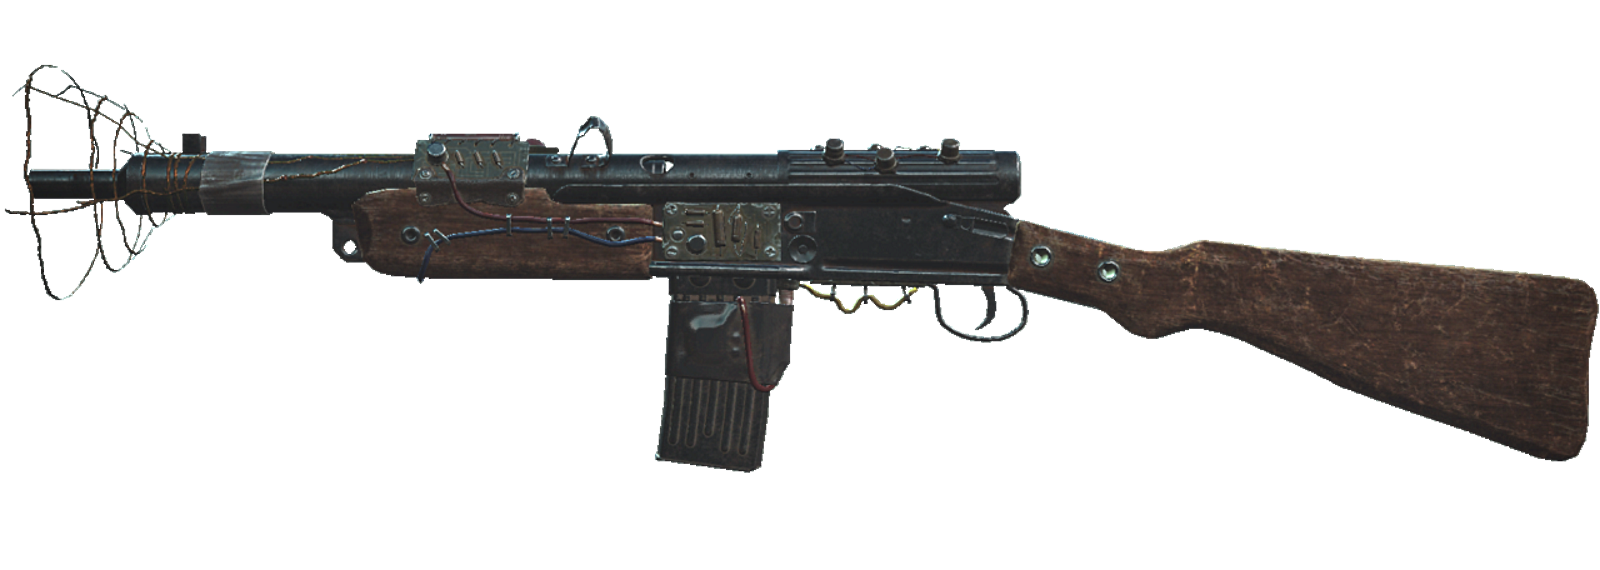 assault rifle fallout wiki fandom powered by wikia image fo4fh radium rifle png fallout wiki